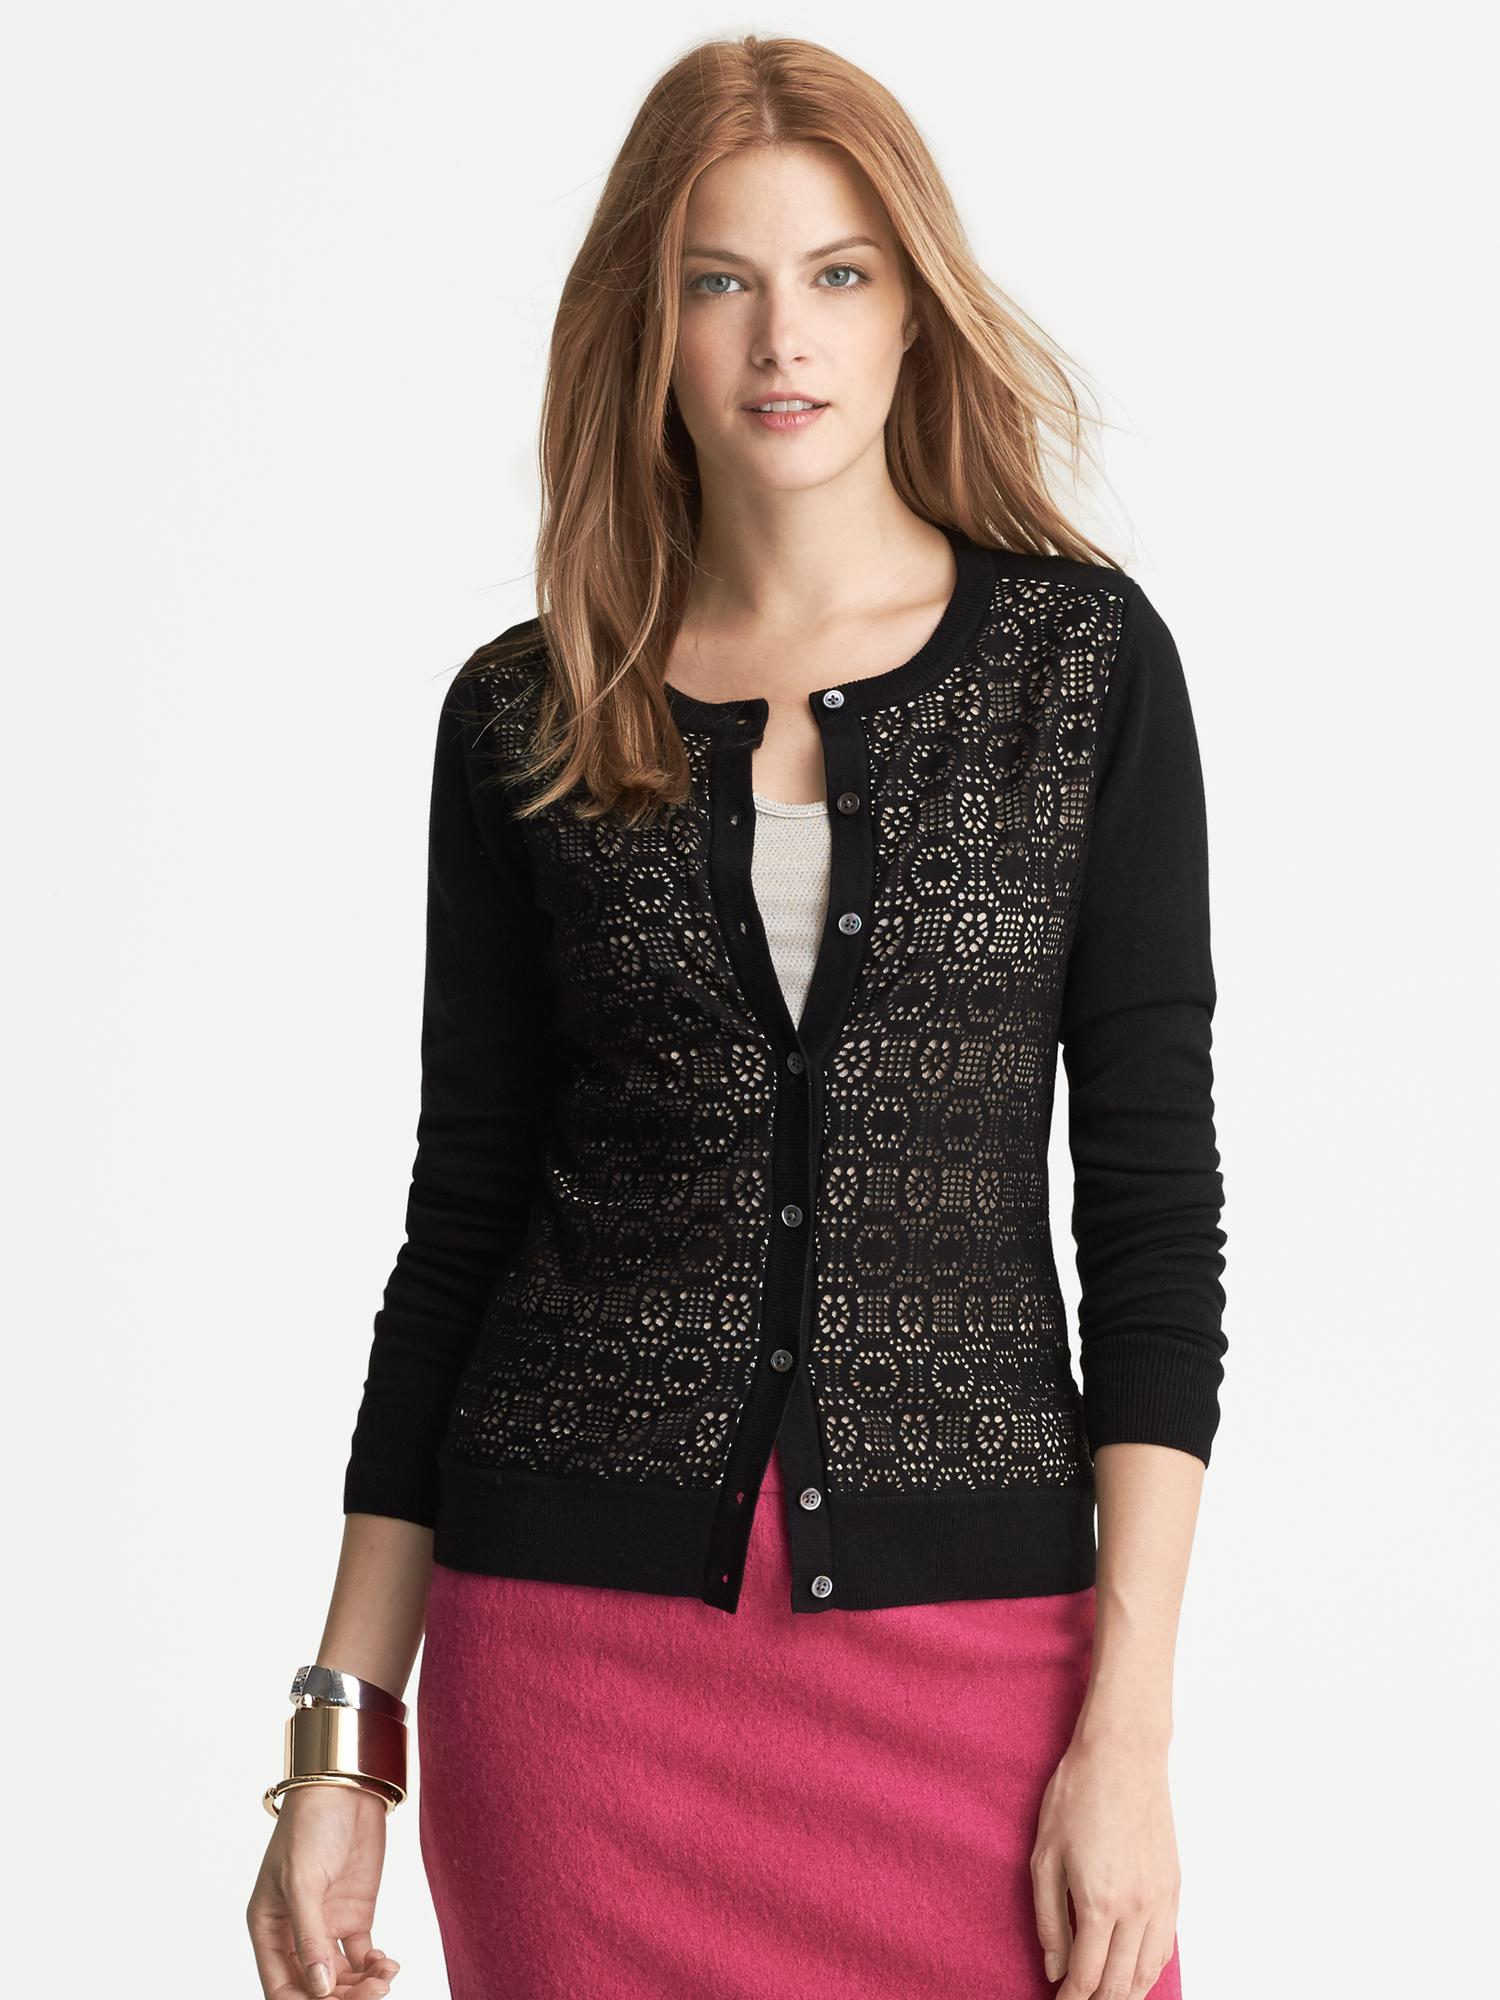 Upgrade your wardrobe with fashionable women's clothing from Banana Republic. Browse a wide range of women's clothes including tops, pants, skirts, dresses, and more.